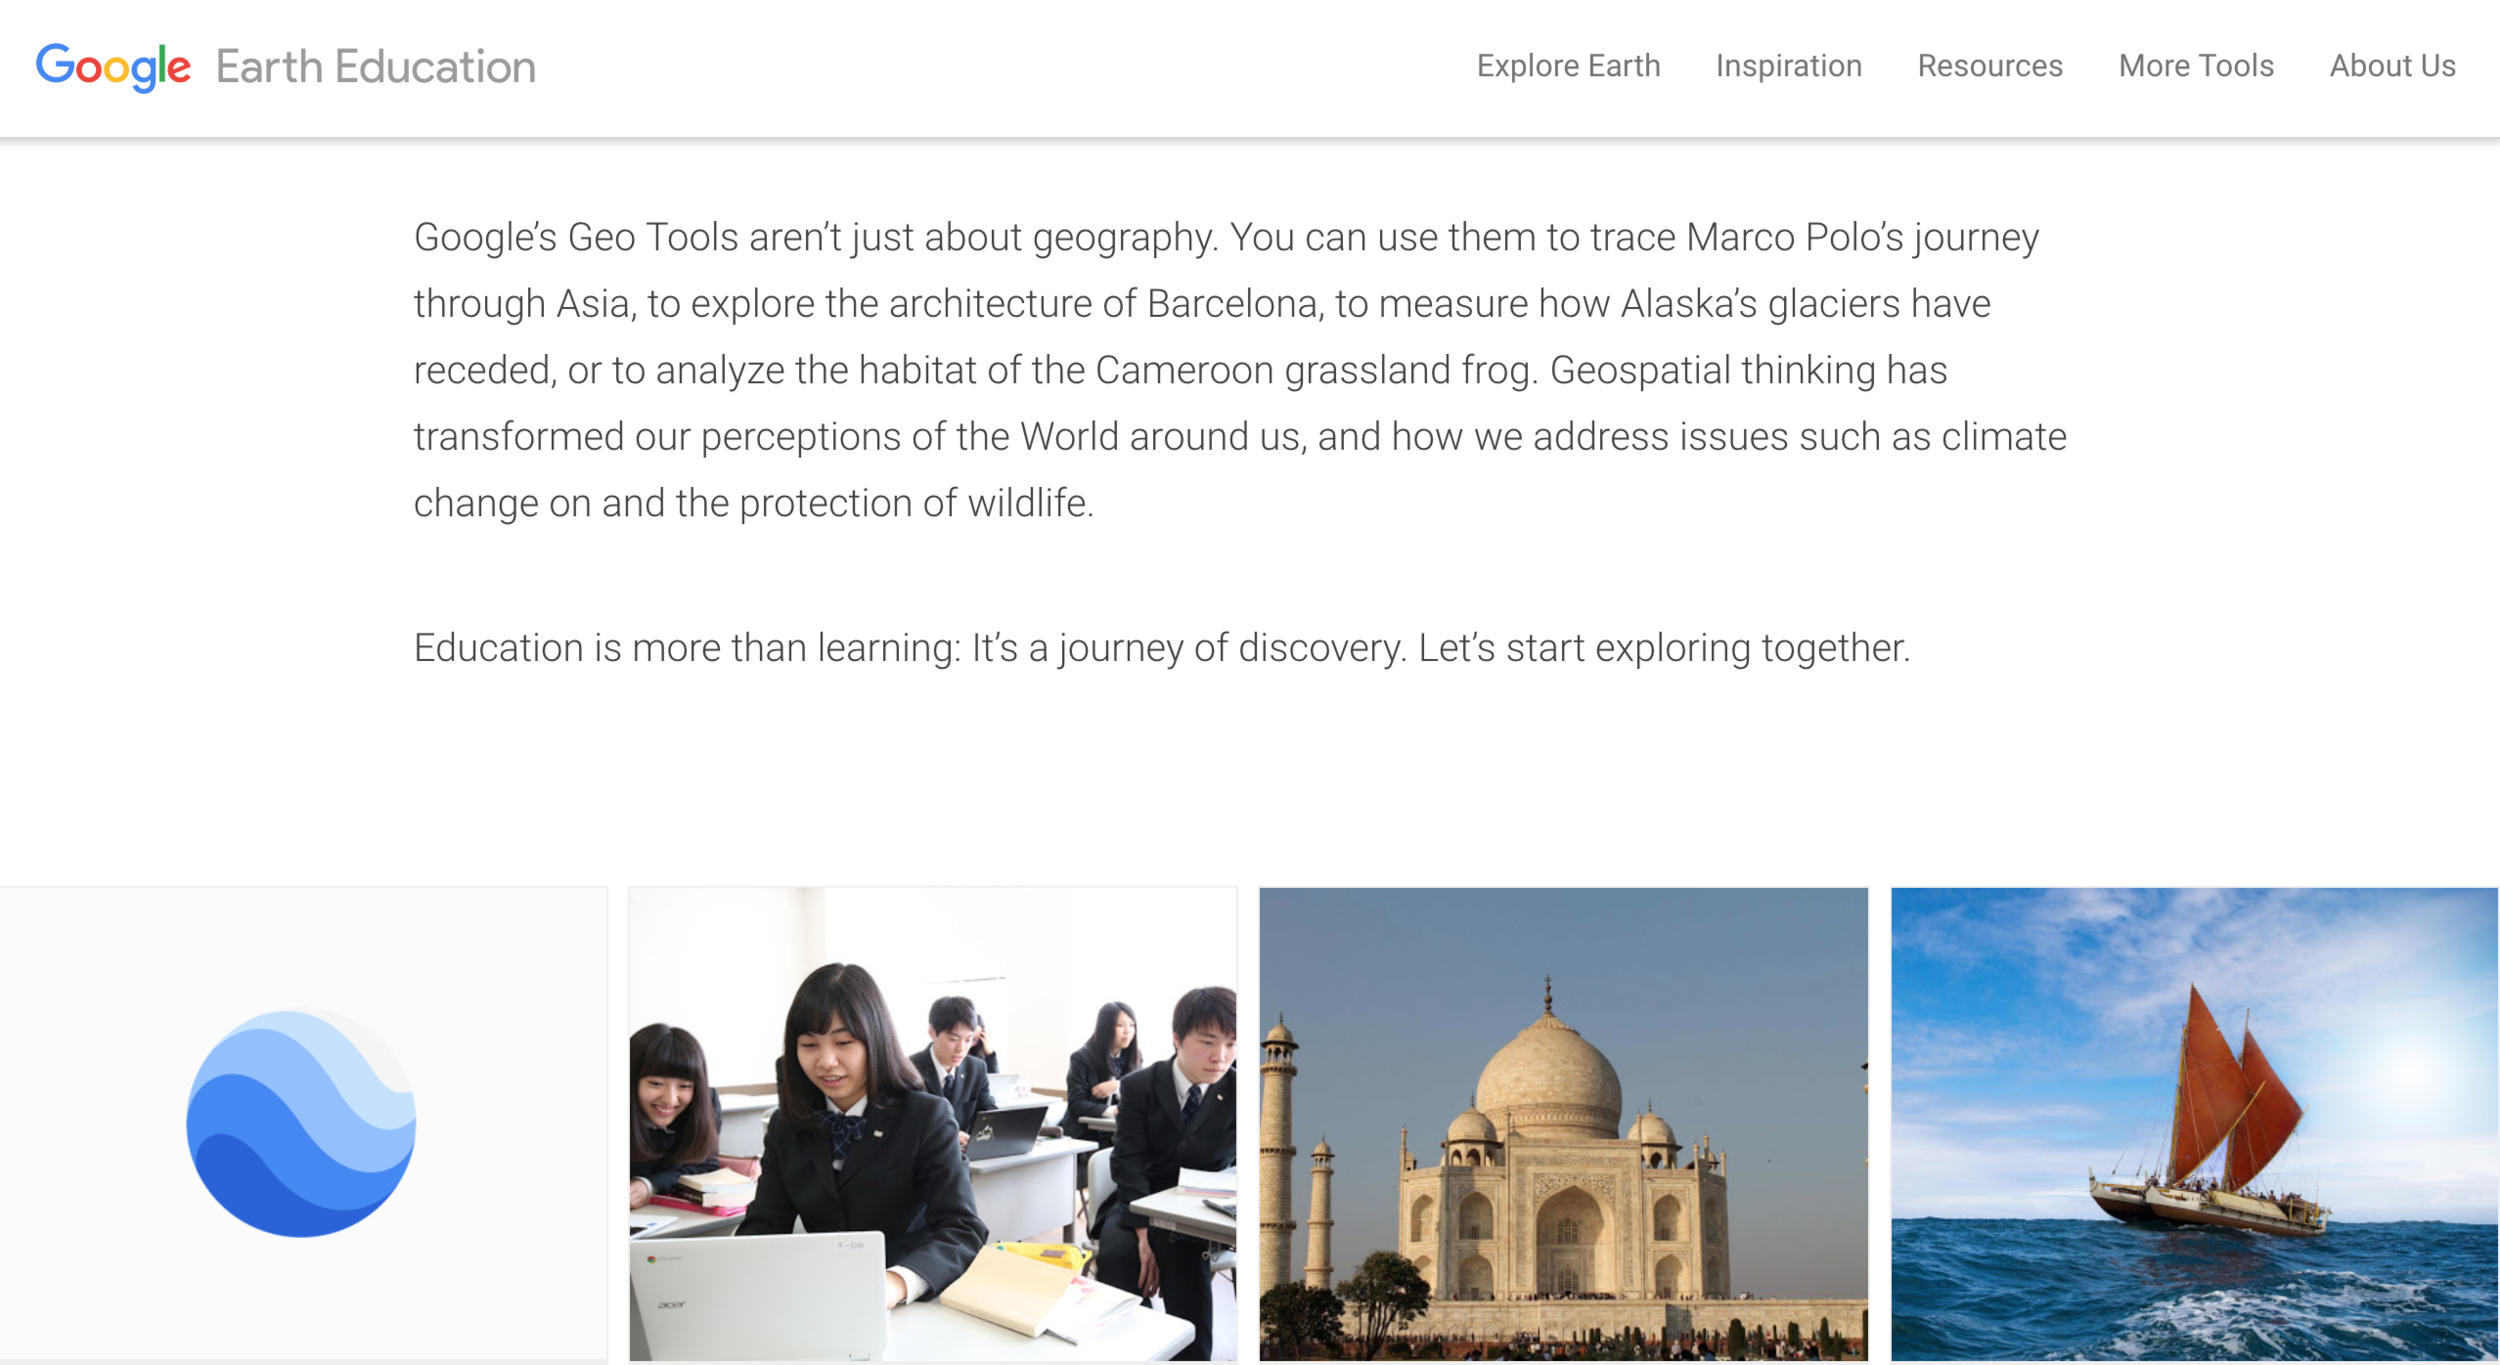 Google Earth Education - This powerful platform is a curiosity engine that inevitably creates questions and insights about the world. When students explore Google Earth, they learn so much about geography and culture. My hopes are that in the next few years, Google Earth will debut more and more content that are for teachers and by teachers. My guess is that we are about to enter a golden age of Google Earth.